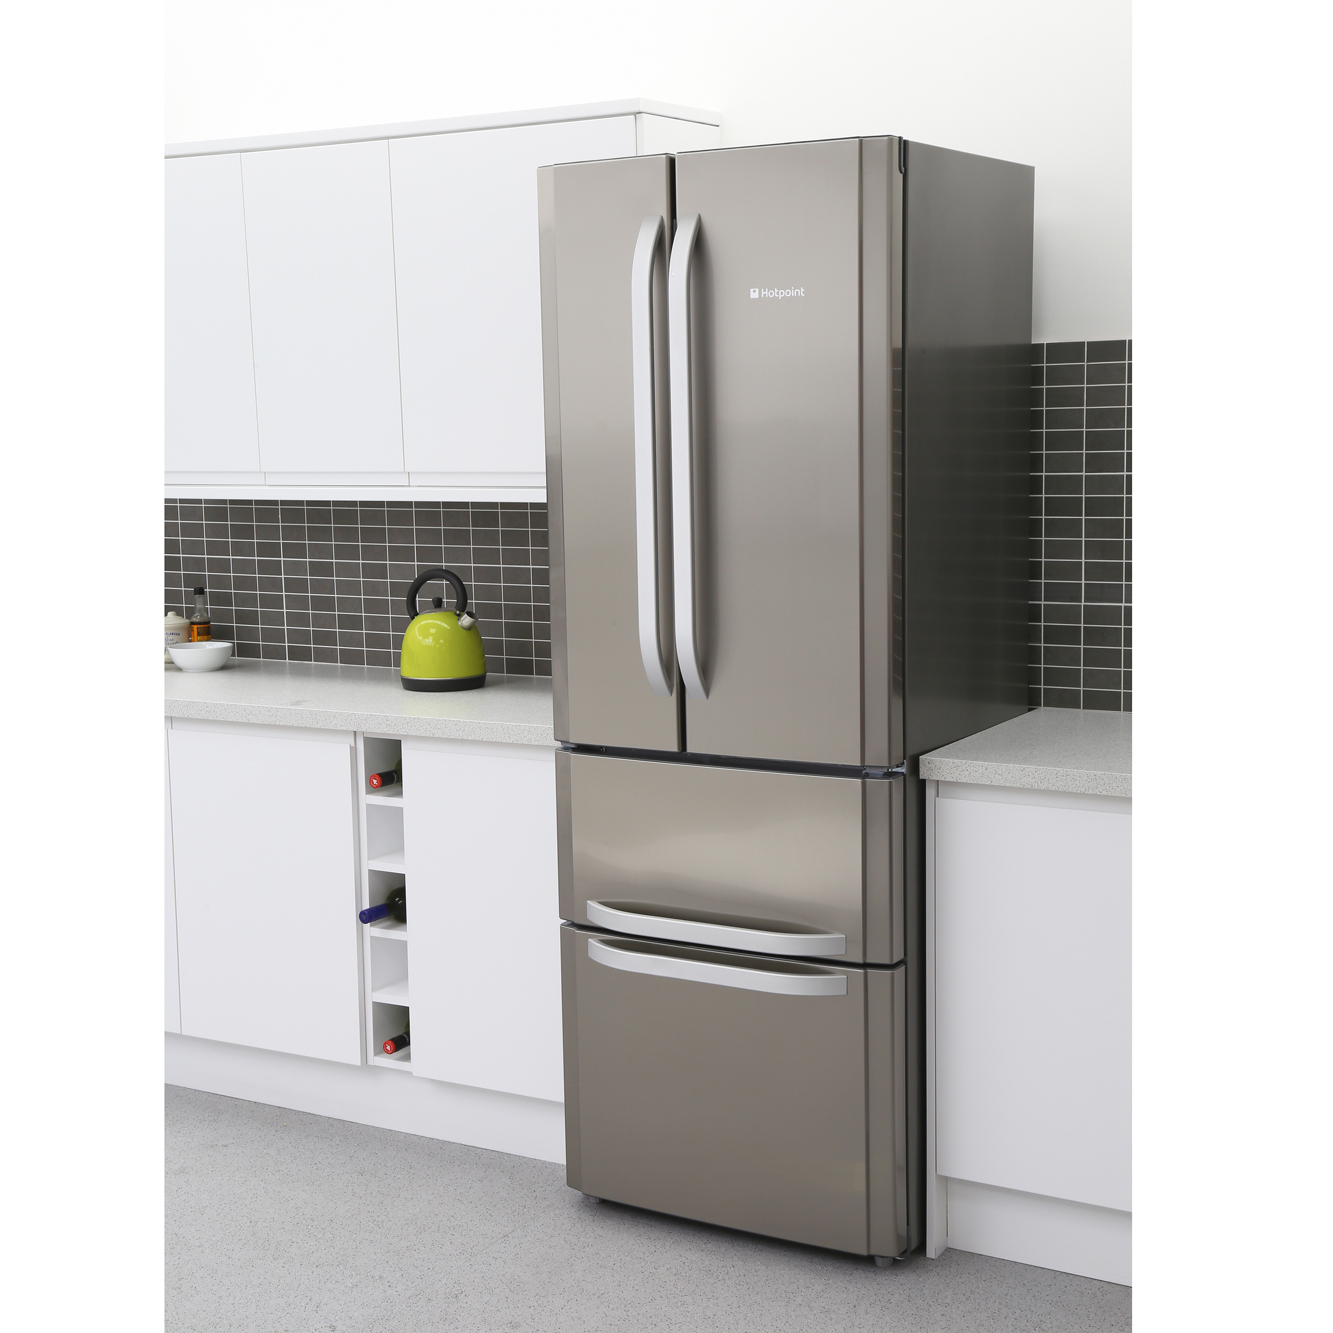 Buy Hotpoint Ffu4dx American Fridge Freezer Stainless